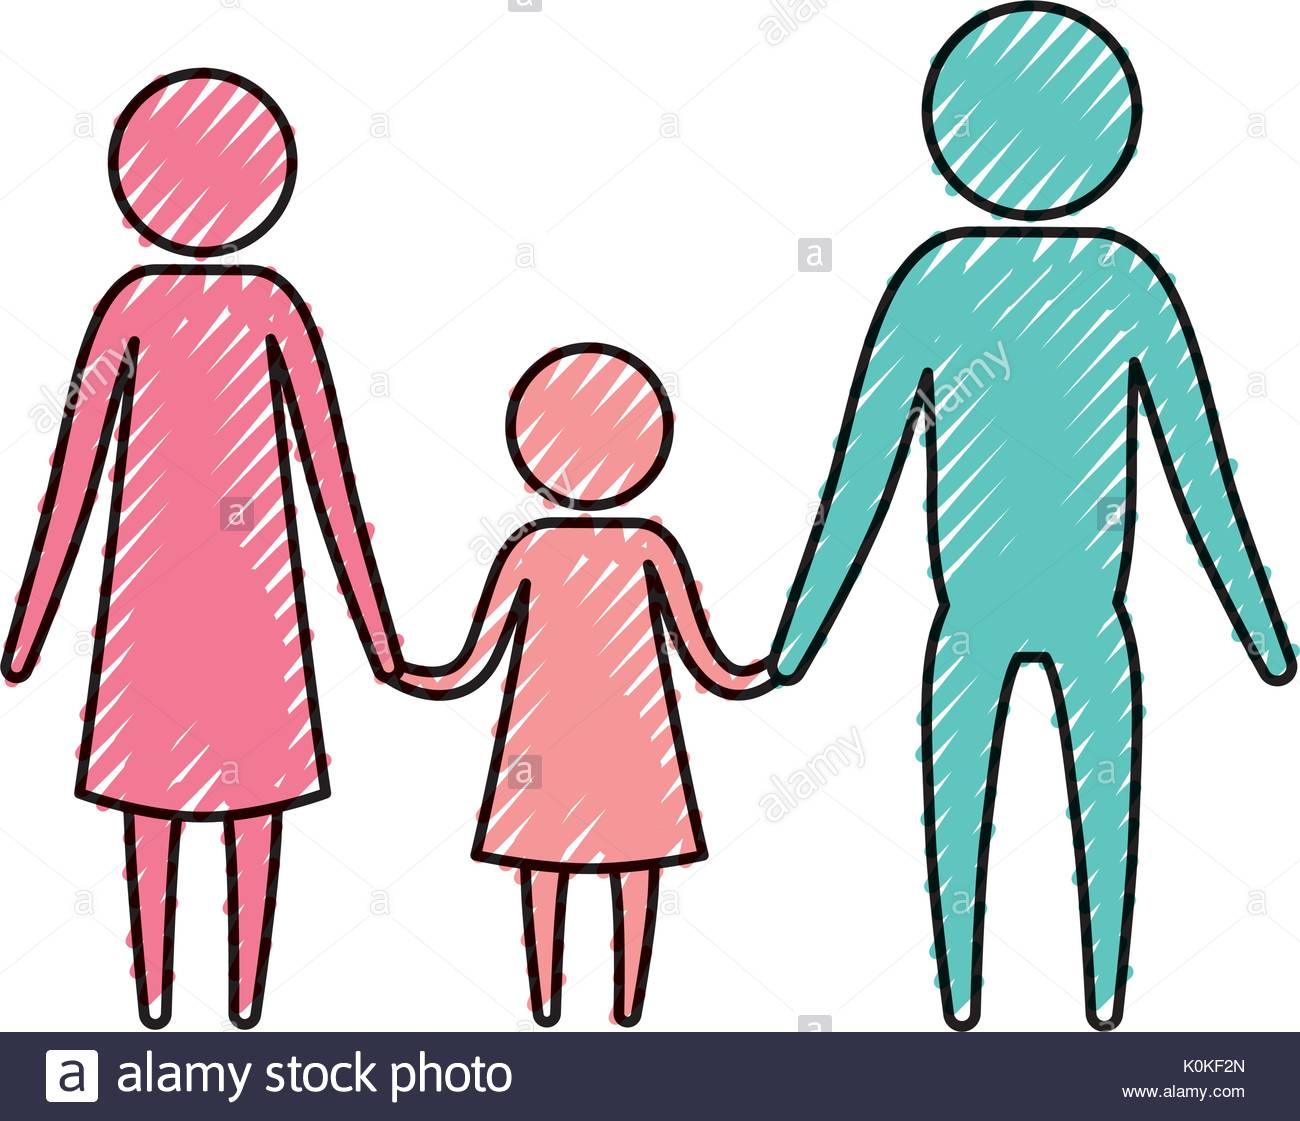 1300x1121 Color Crayon Silhouette Pictogram Parents With A Girl Holding